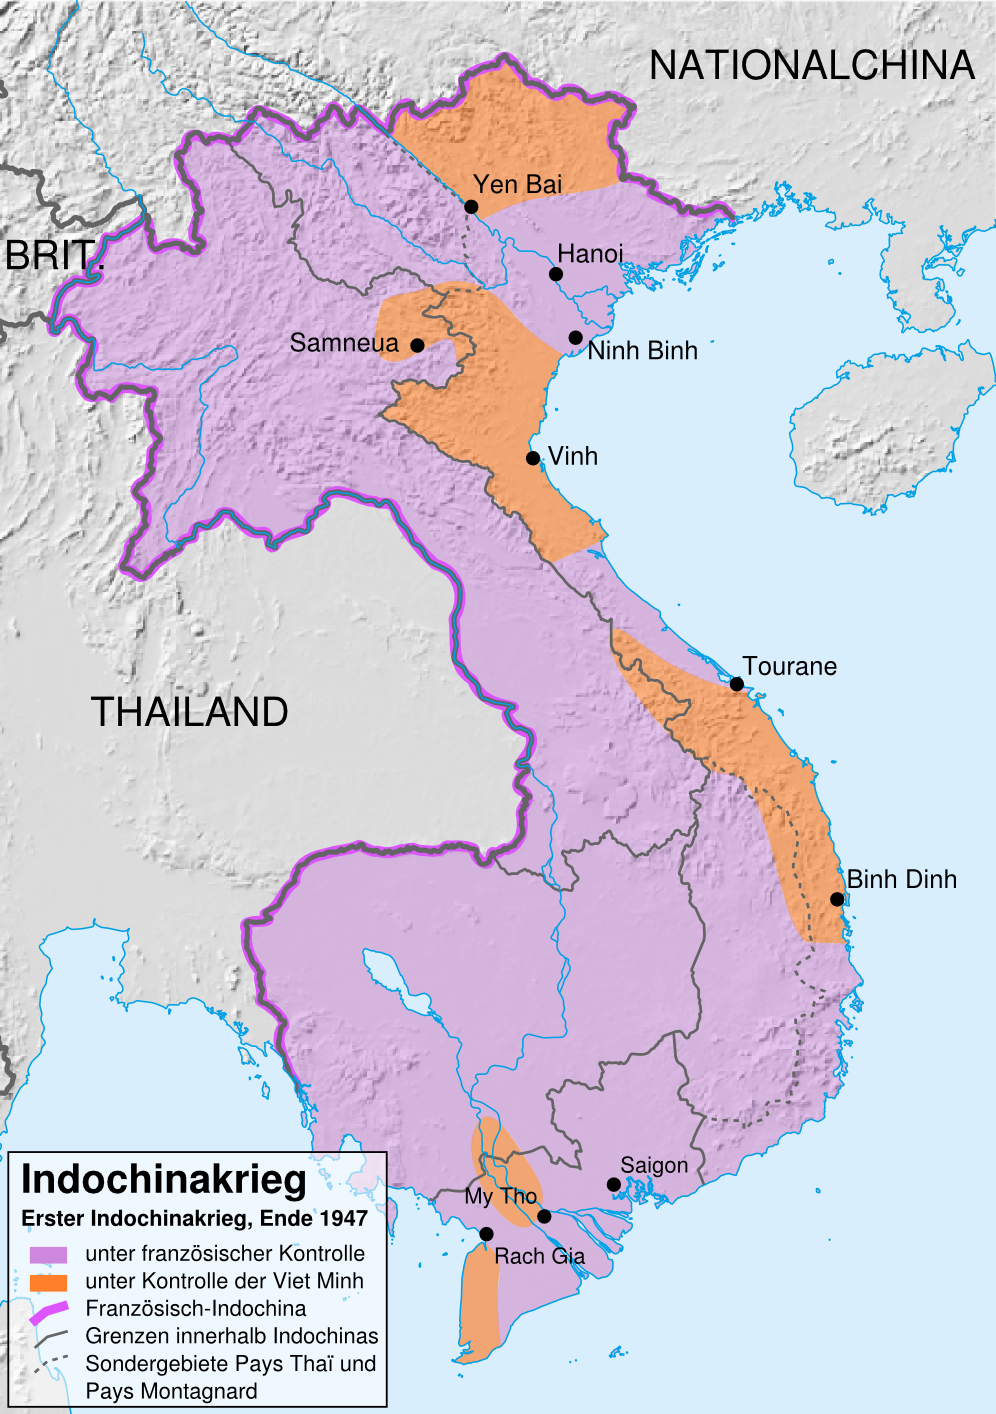 Indochina in 1947.